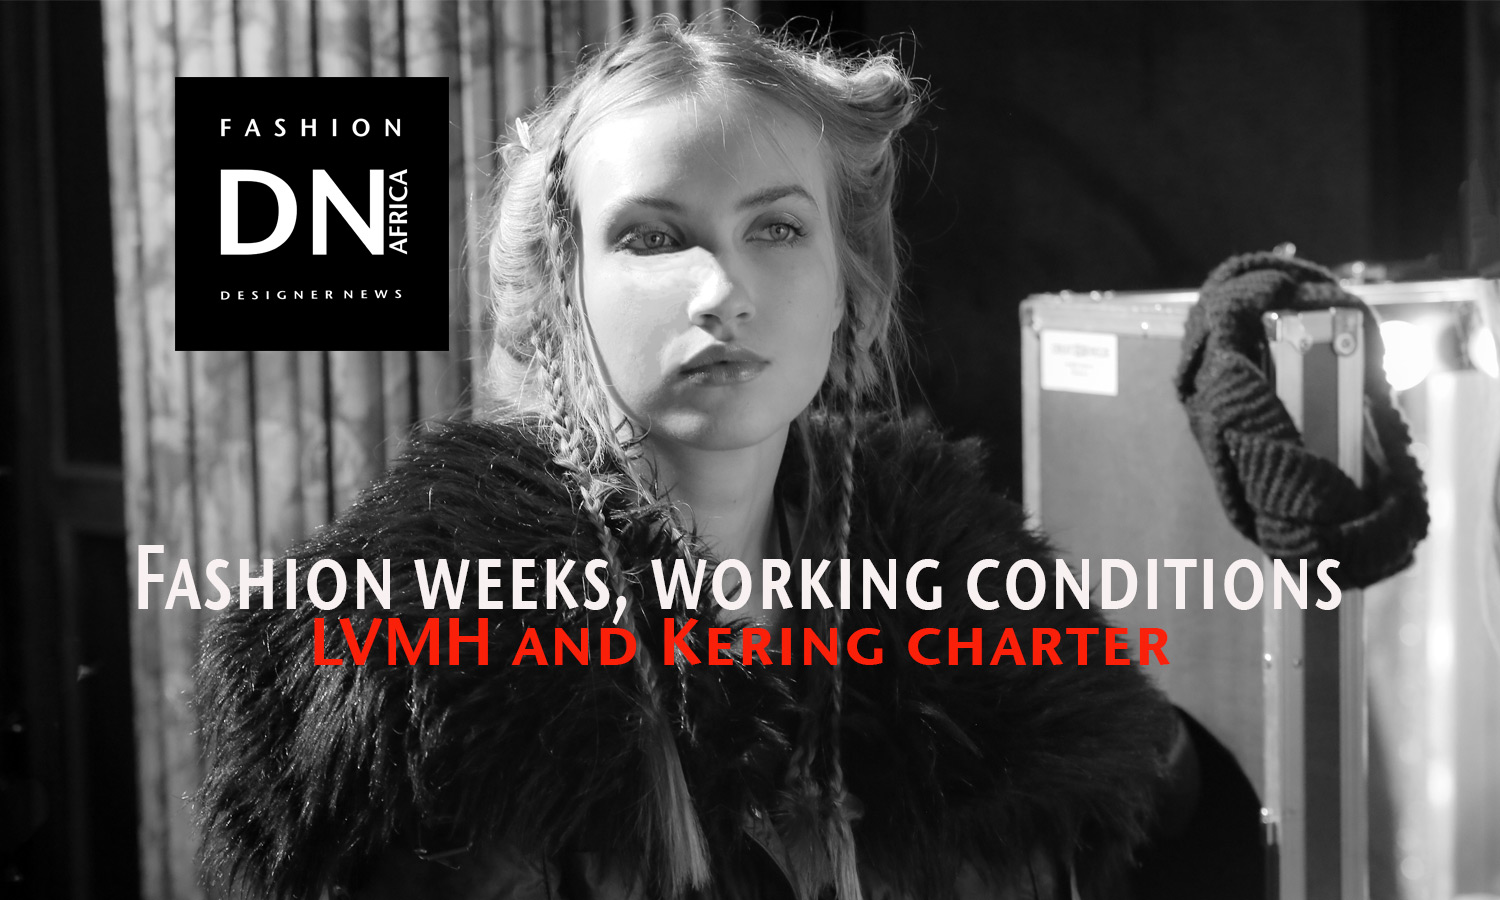 AFRICAN FASHION MAGAZINE- FASHION WEEK WORKING CONDITIONS - LVMH - KERING - DN AFRICA - STUDIO 24 NIGERIA